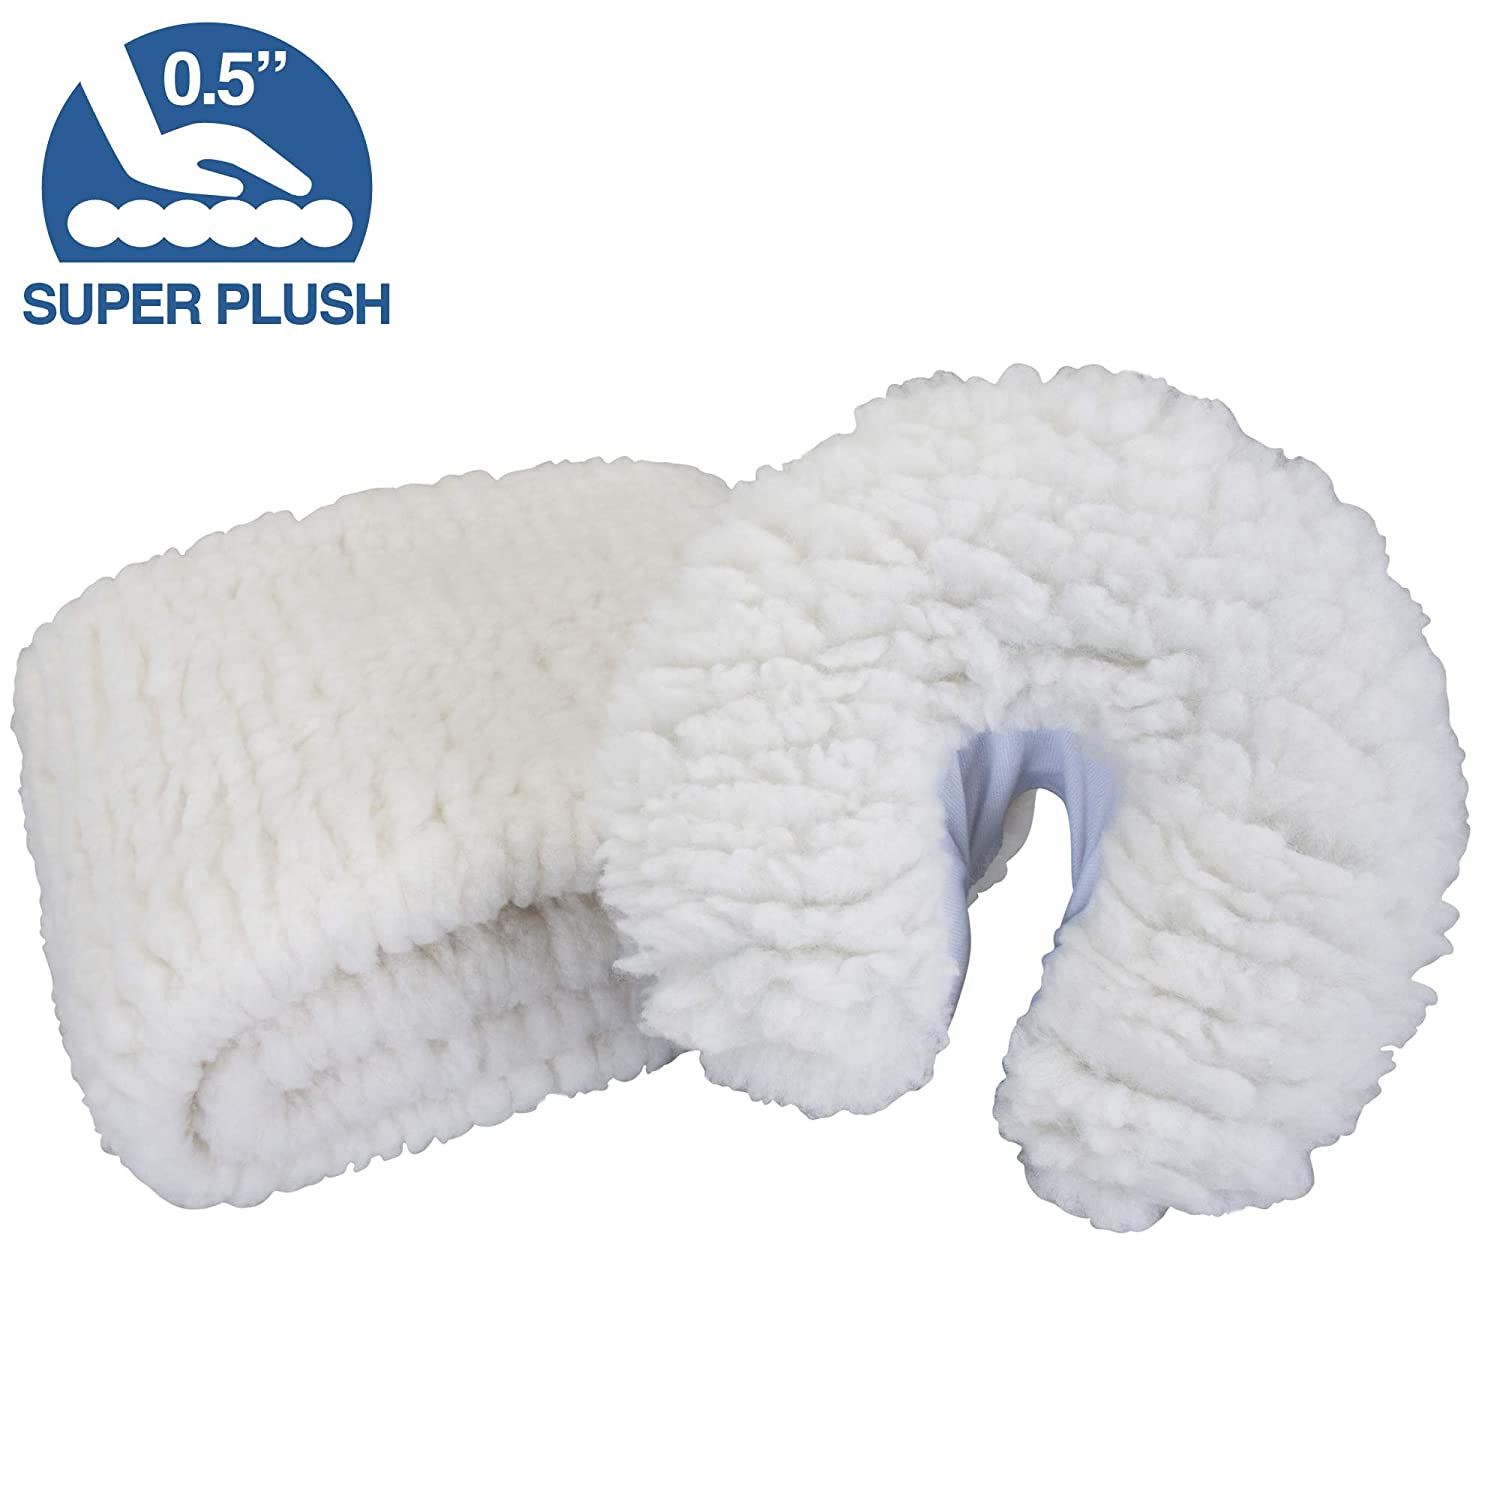 EARTHLITE Massage Table Fleece Pads – Different Styles & Sets - Cover Your Massage Table & Face Cradles in Cozy, Warm Fleece